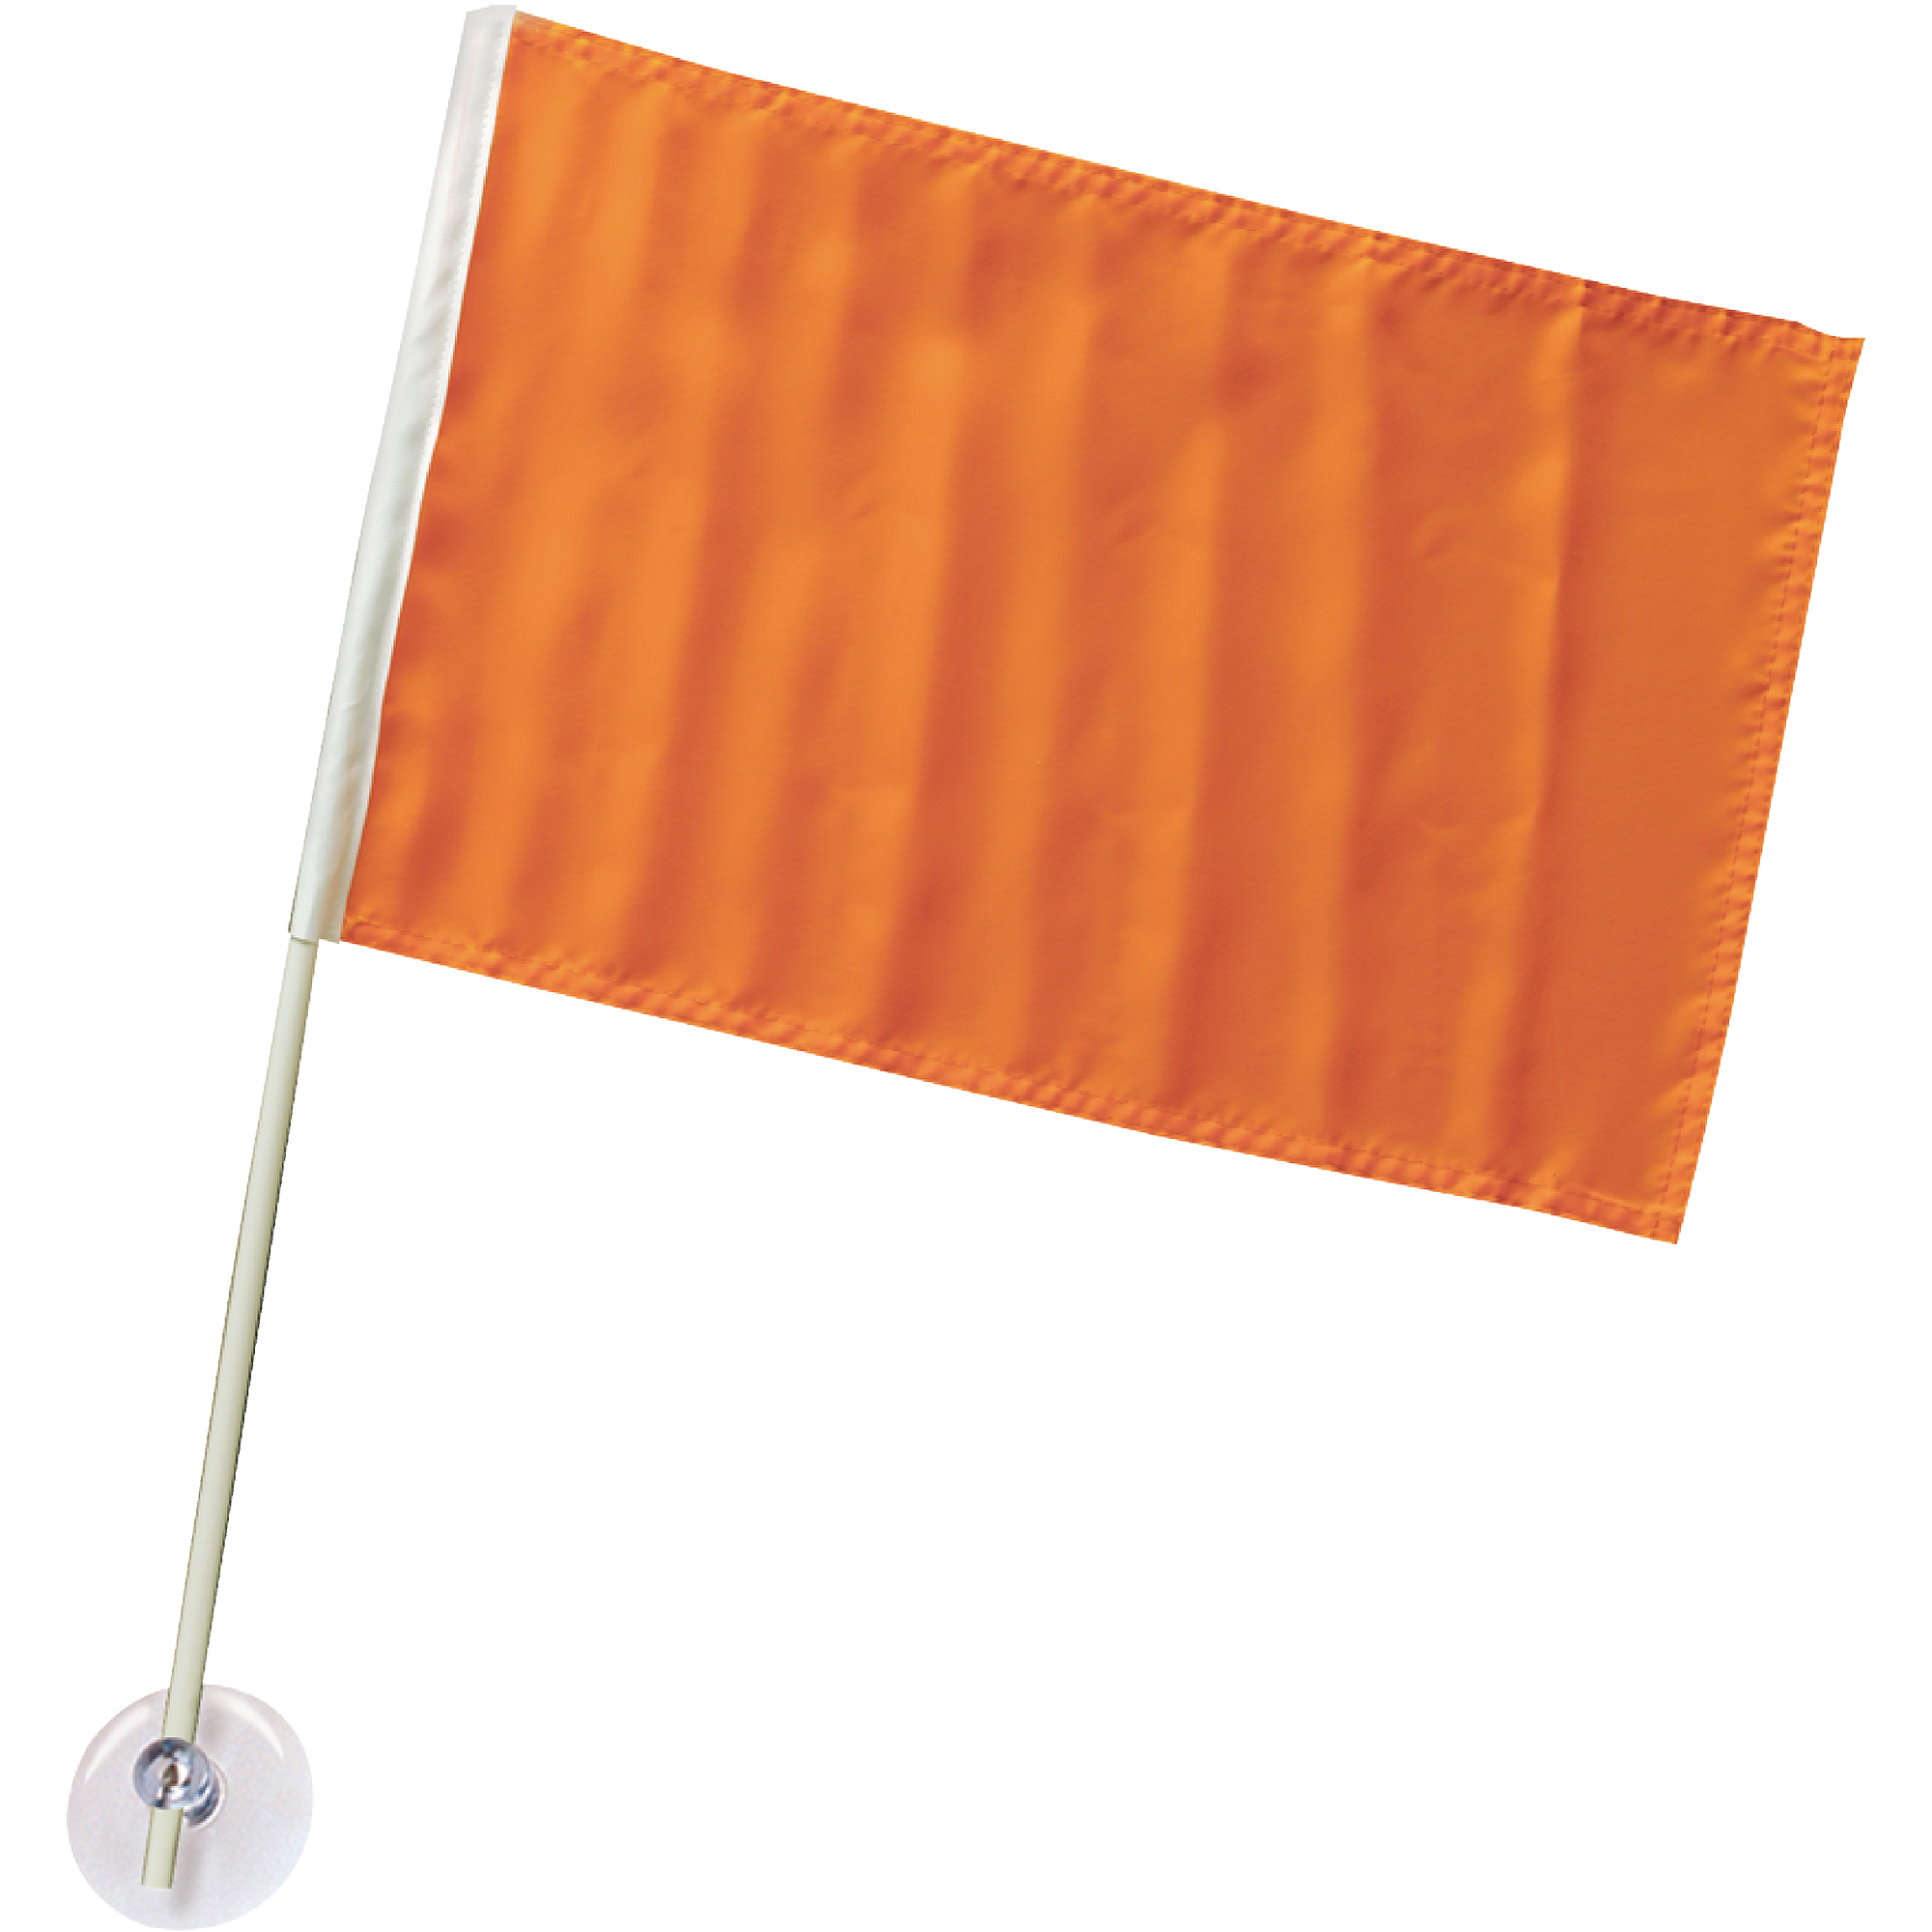 "Seachoice 12"" x 18"" Orange Nylon Ski Flag on 24"" Plastic Pole with Suction Cups"